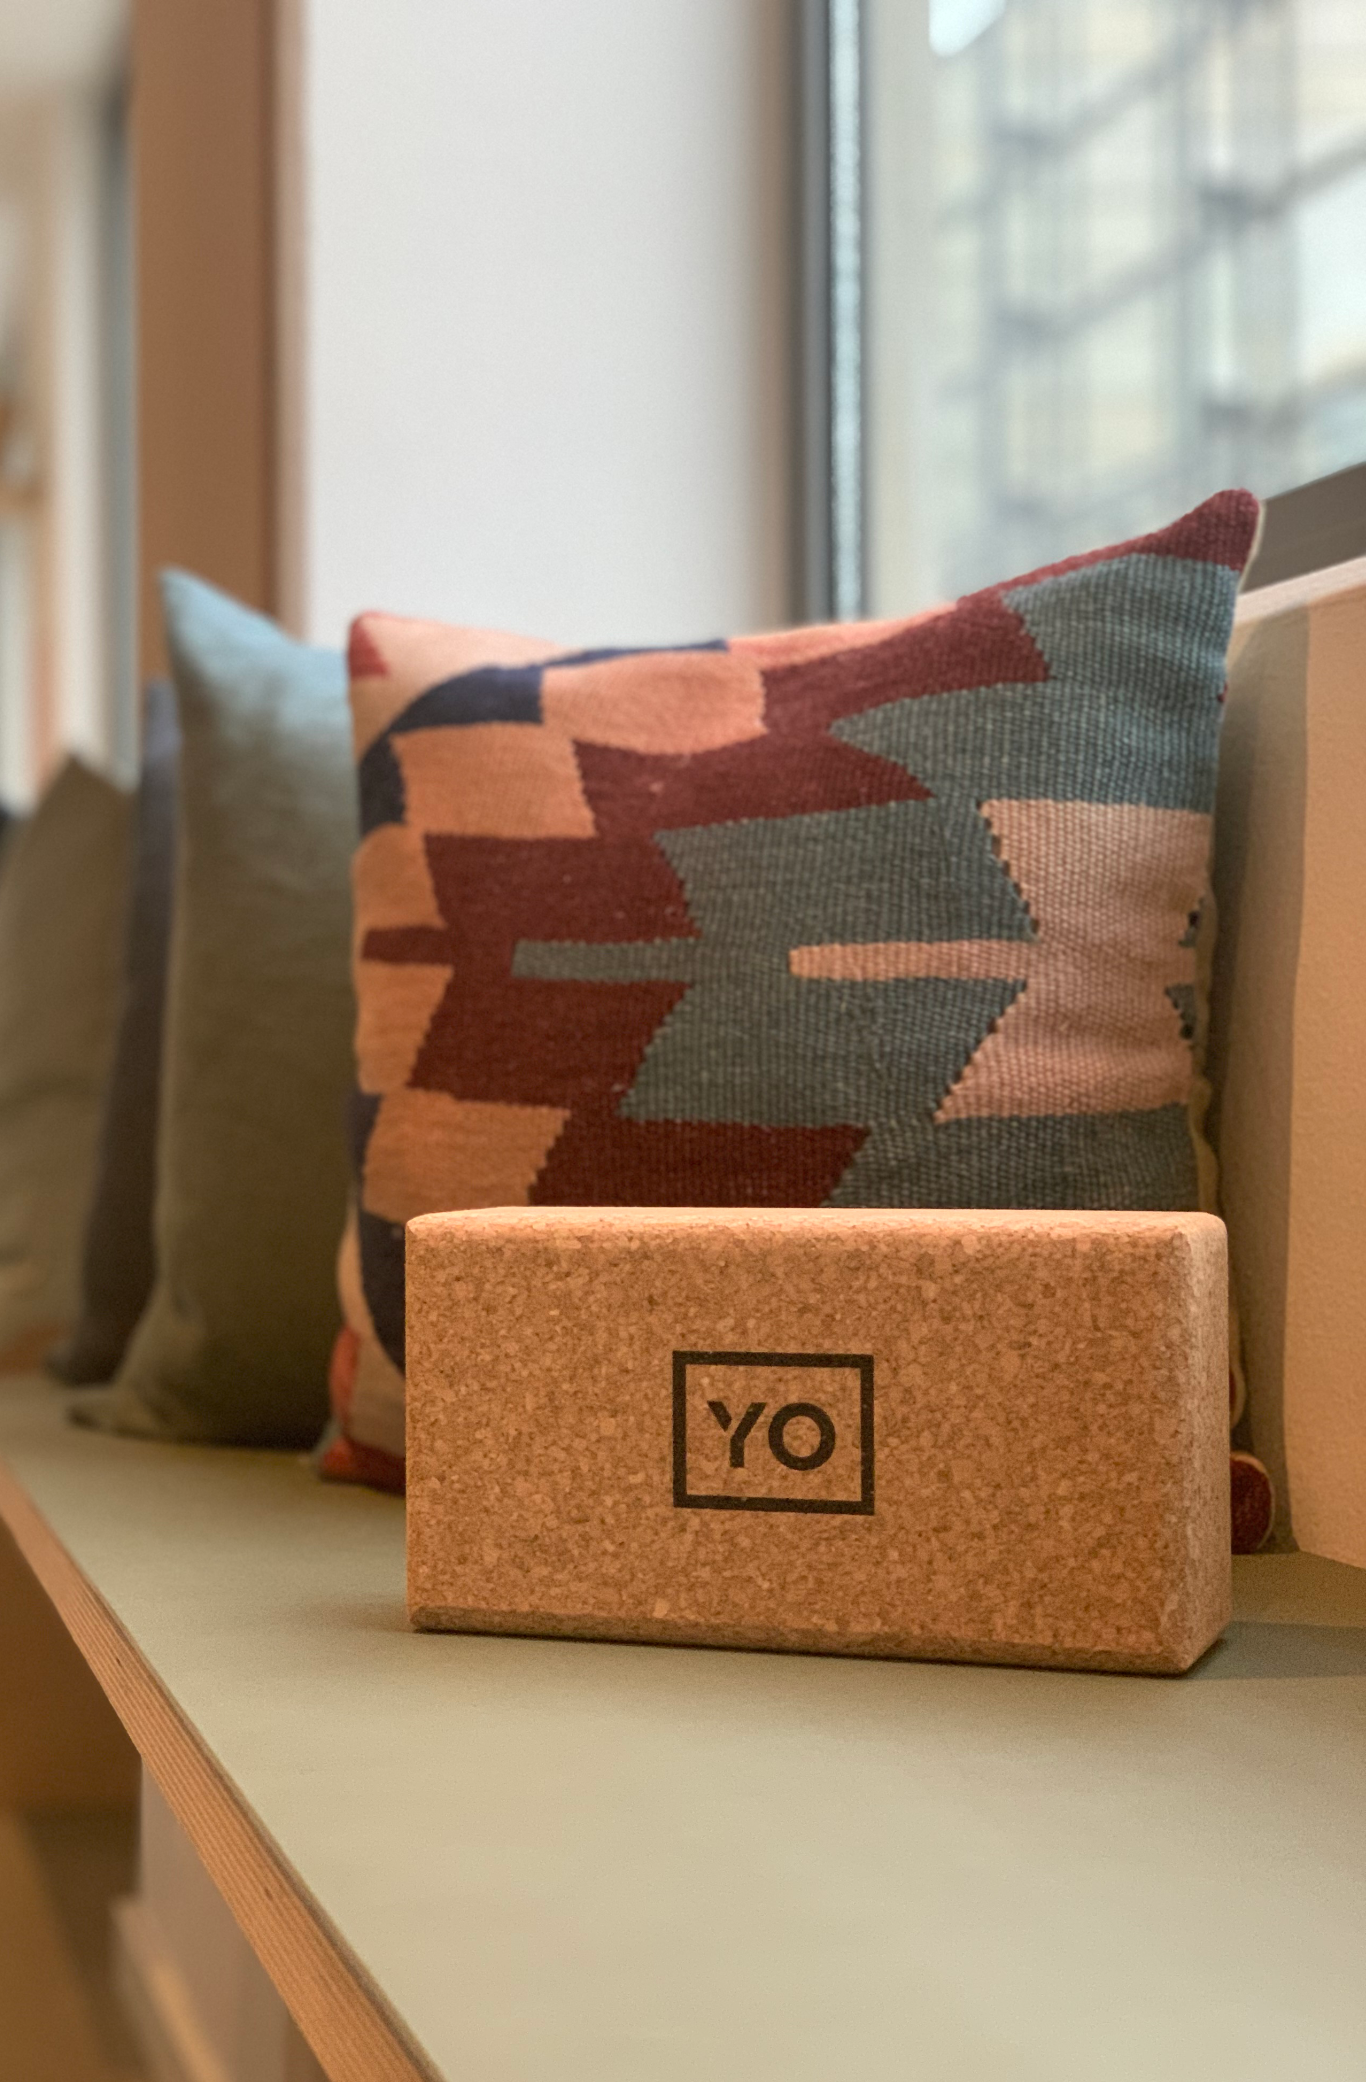 YO YOGA BLOCK - CORK